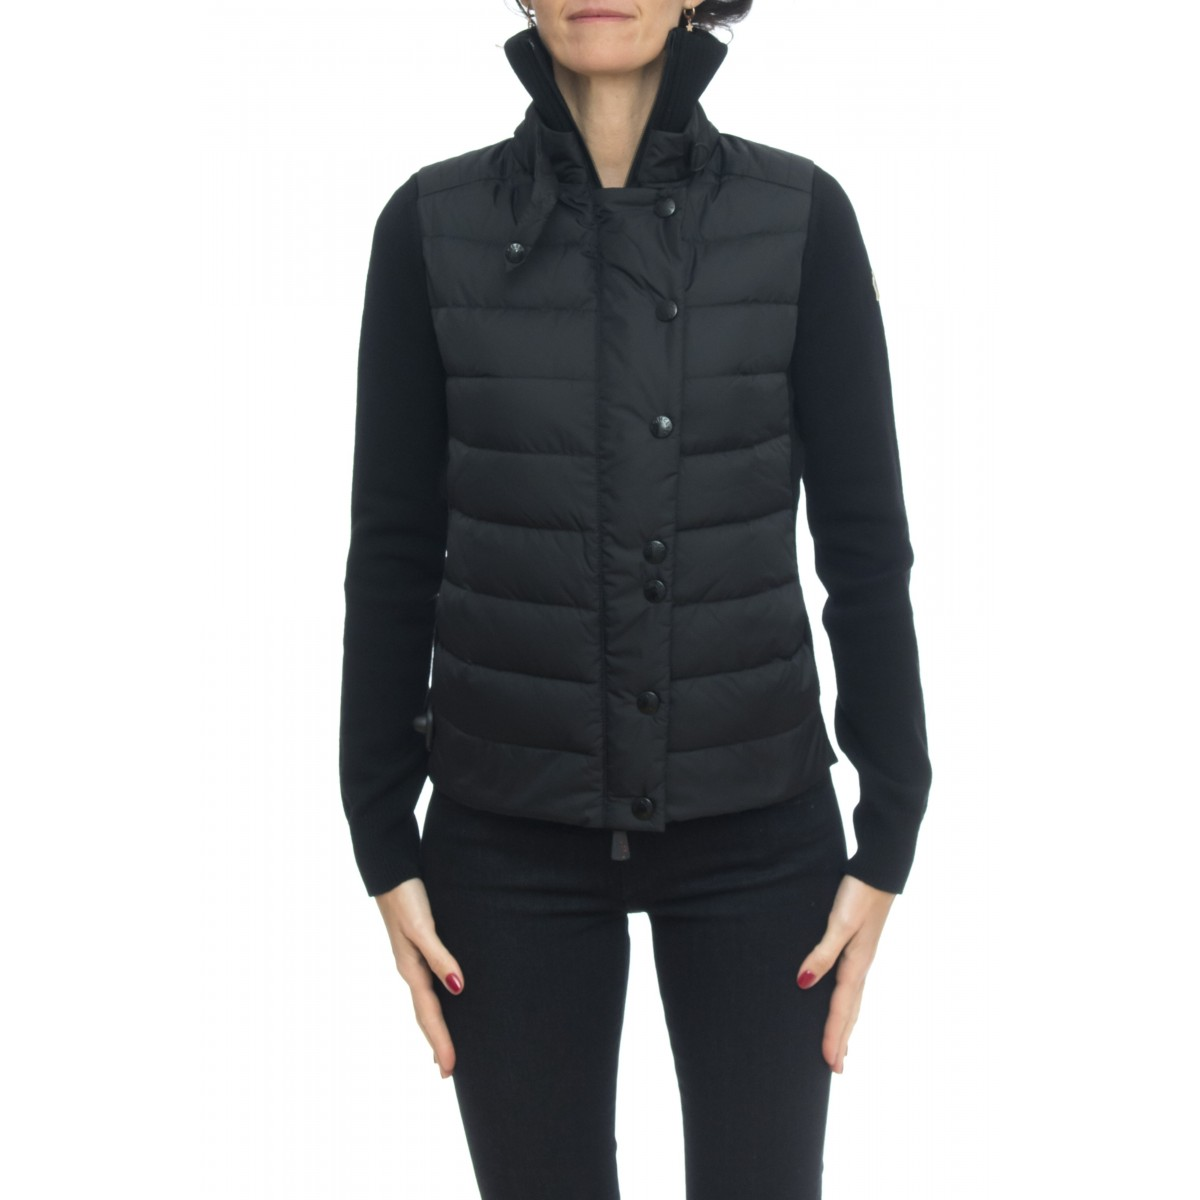 MONCLER GRENOBLE WOMAN 94521